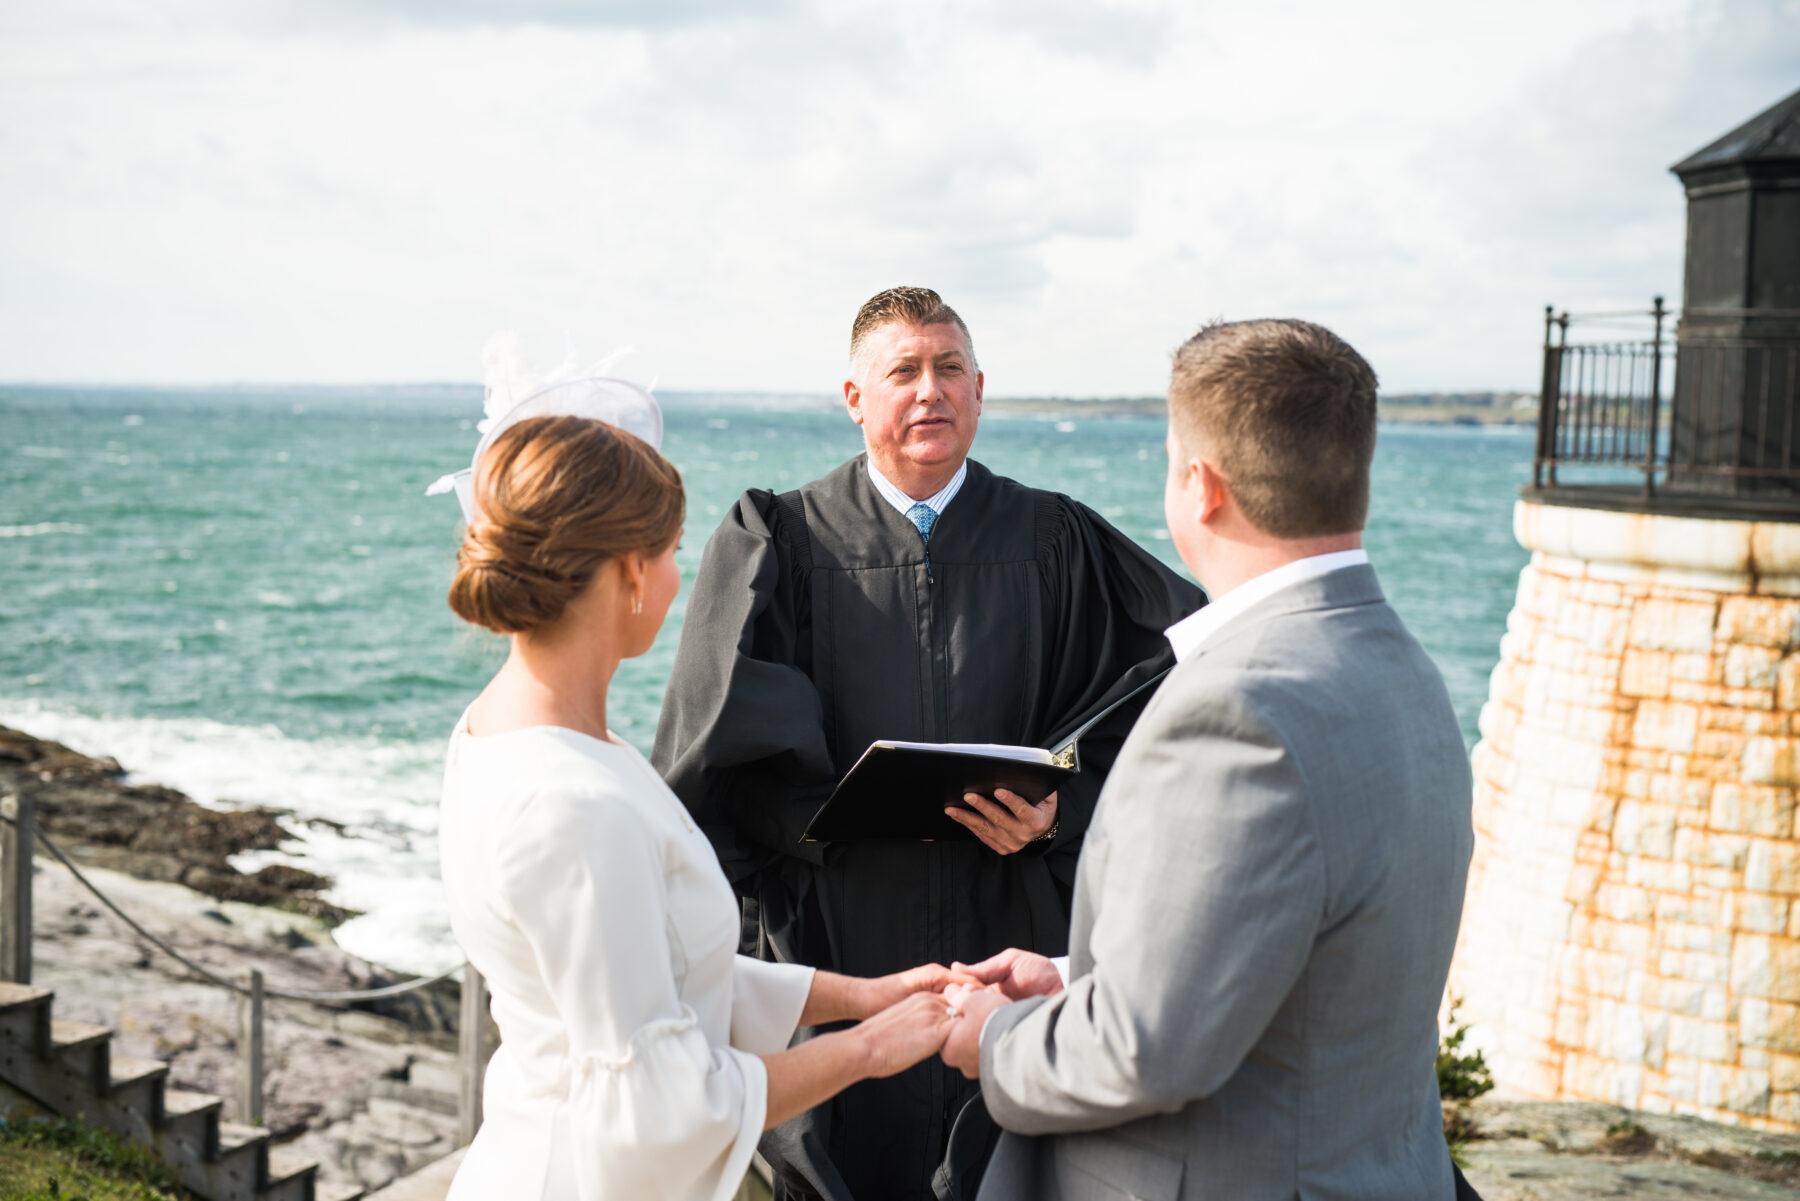 Castle Hill Newport Elopement Danielle and Mike Blueflash Photography 2